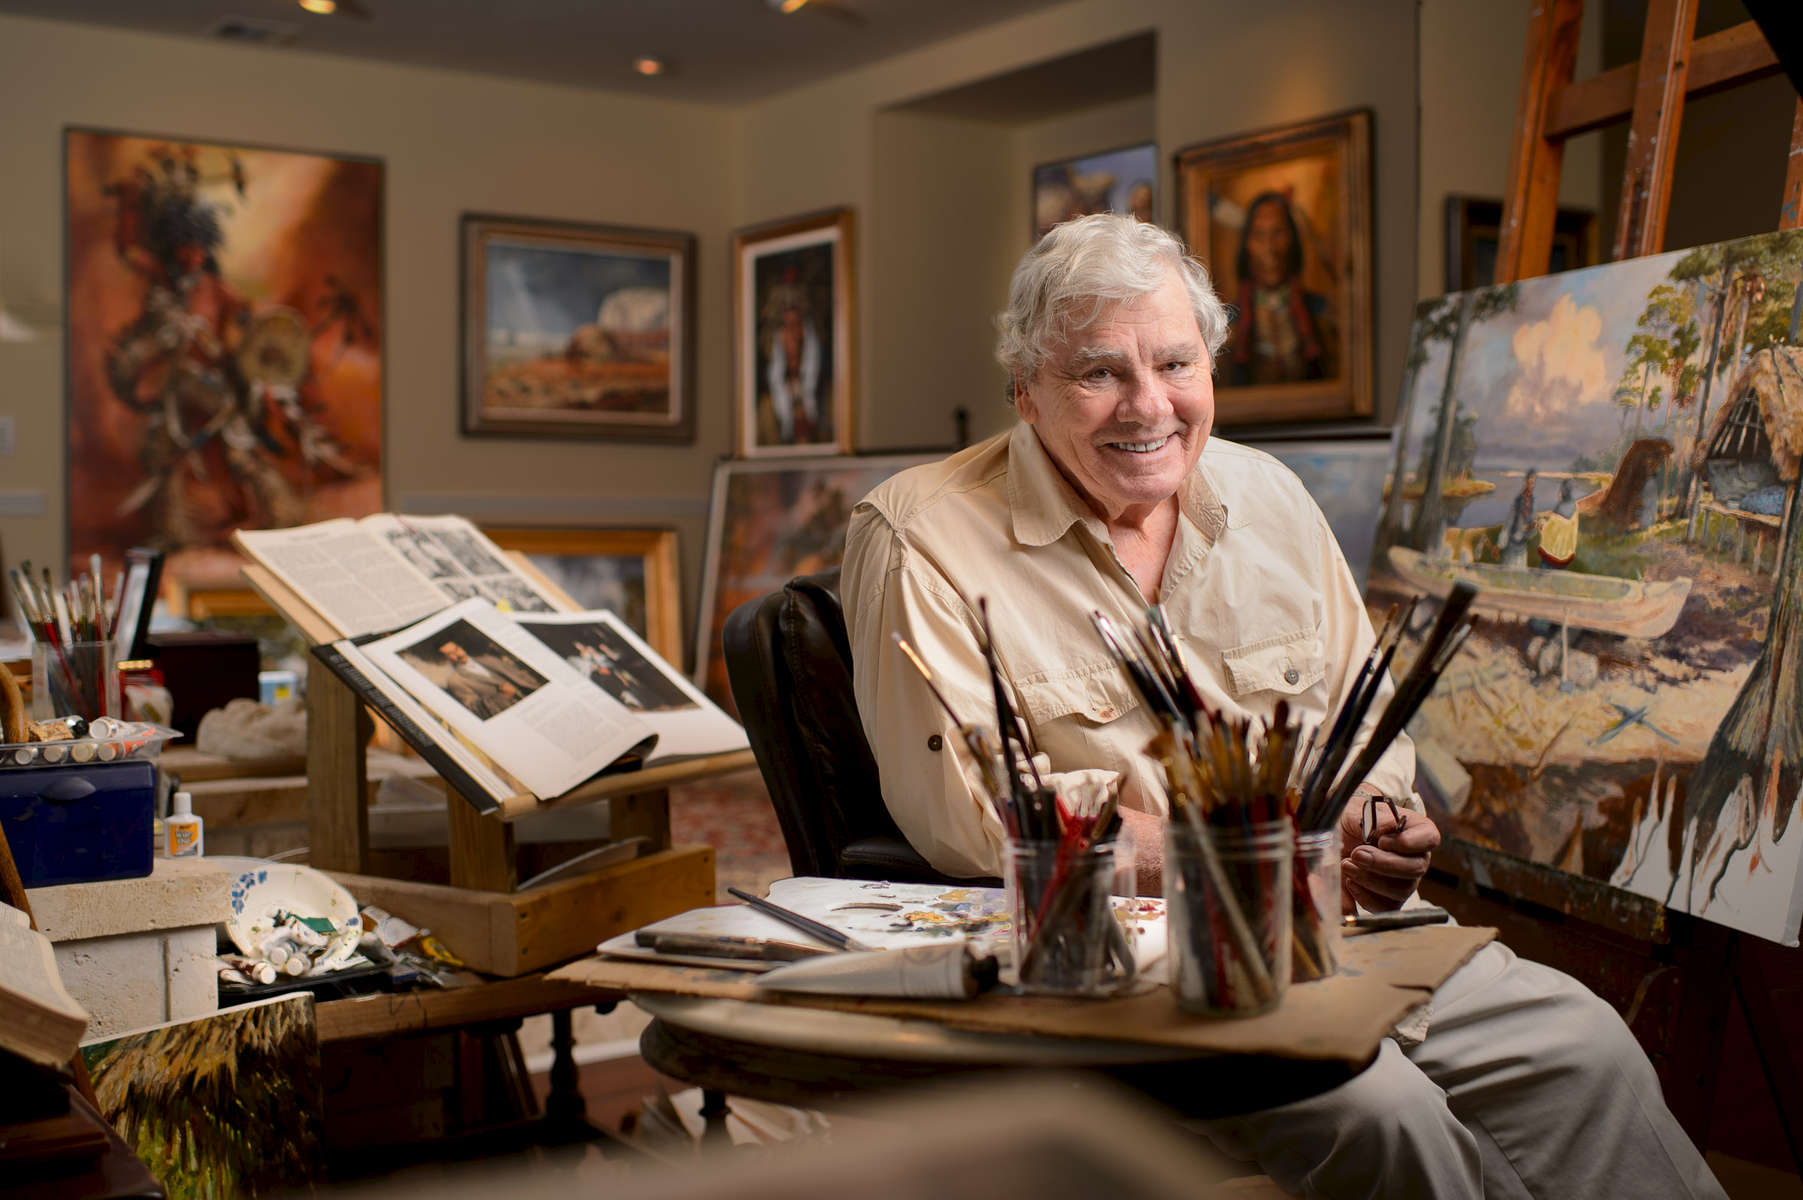 Artist James Hutchinson, Florida Artist Hall of Fame, photographed in his studio.